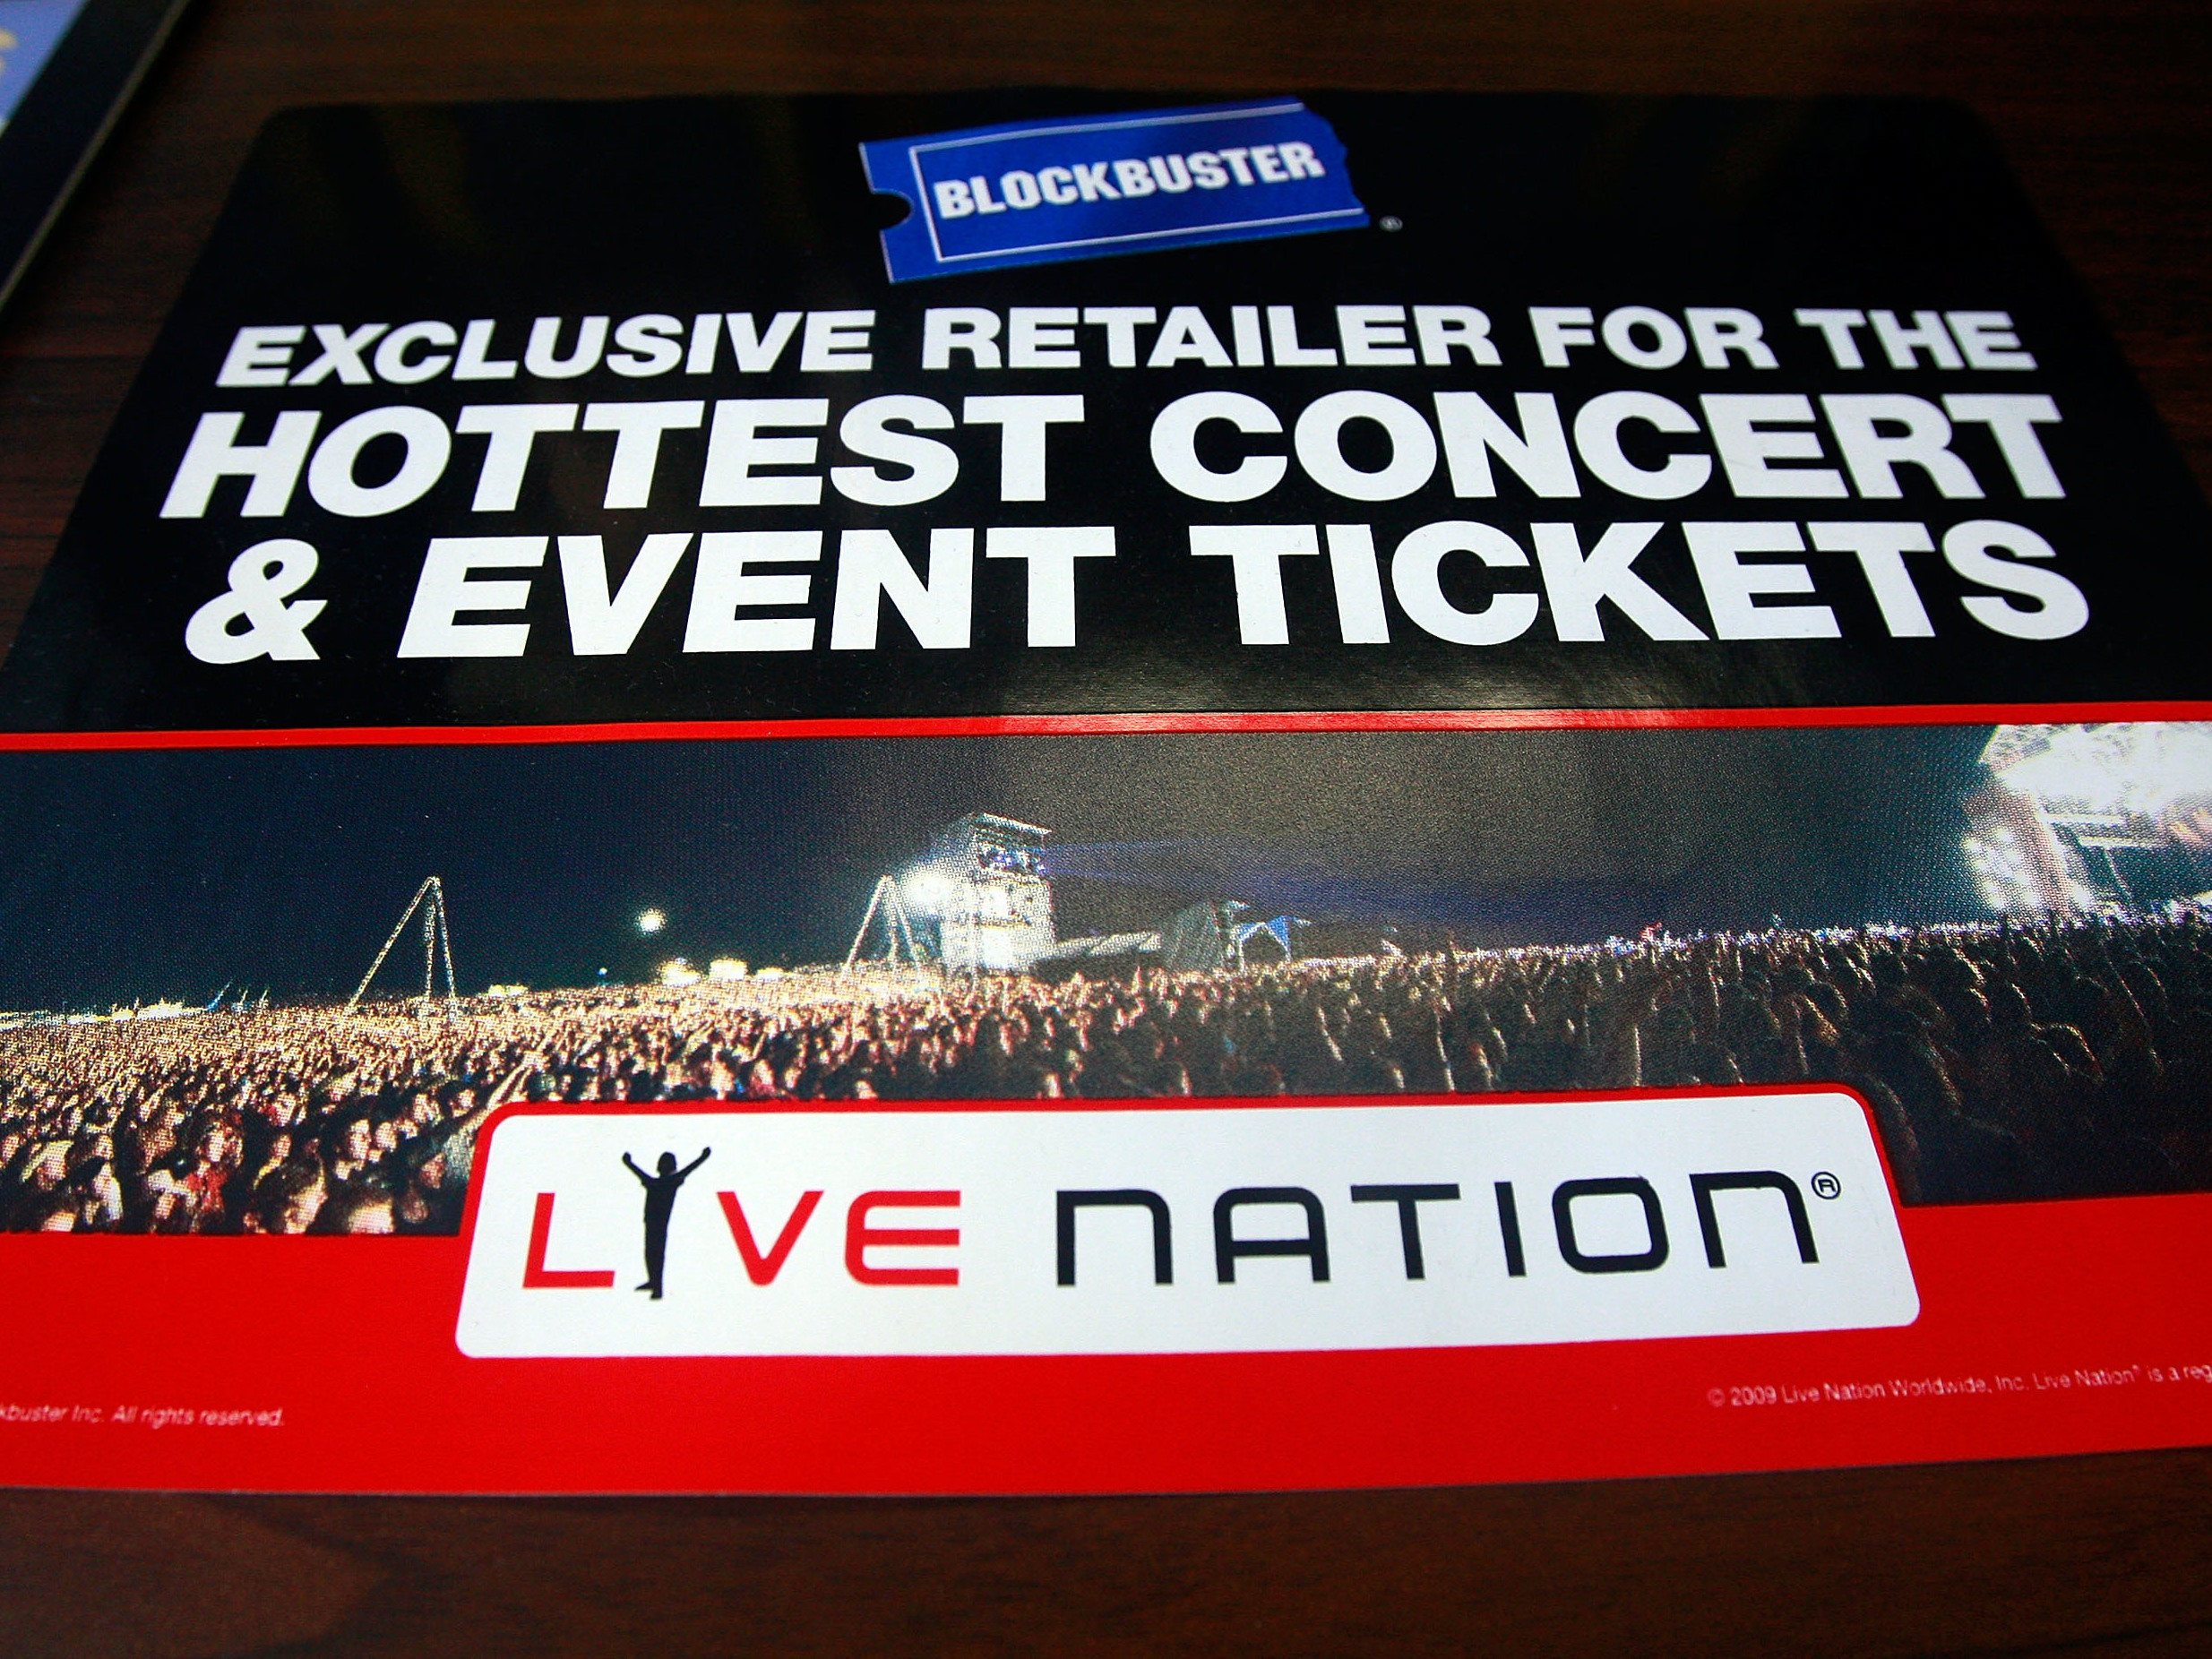 A 2009 Blockbuster sign advertising Live Nation's ticket sales publicized shortly before the latter company's merger with Ticketmaster